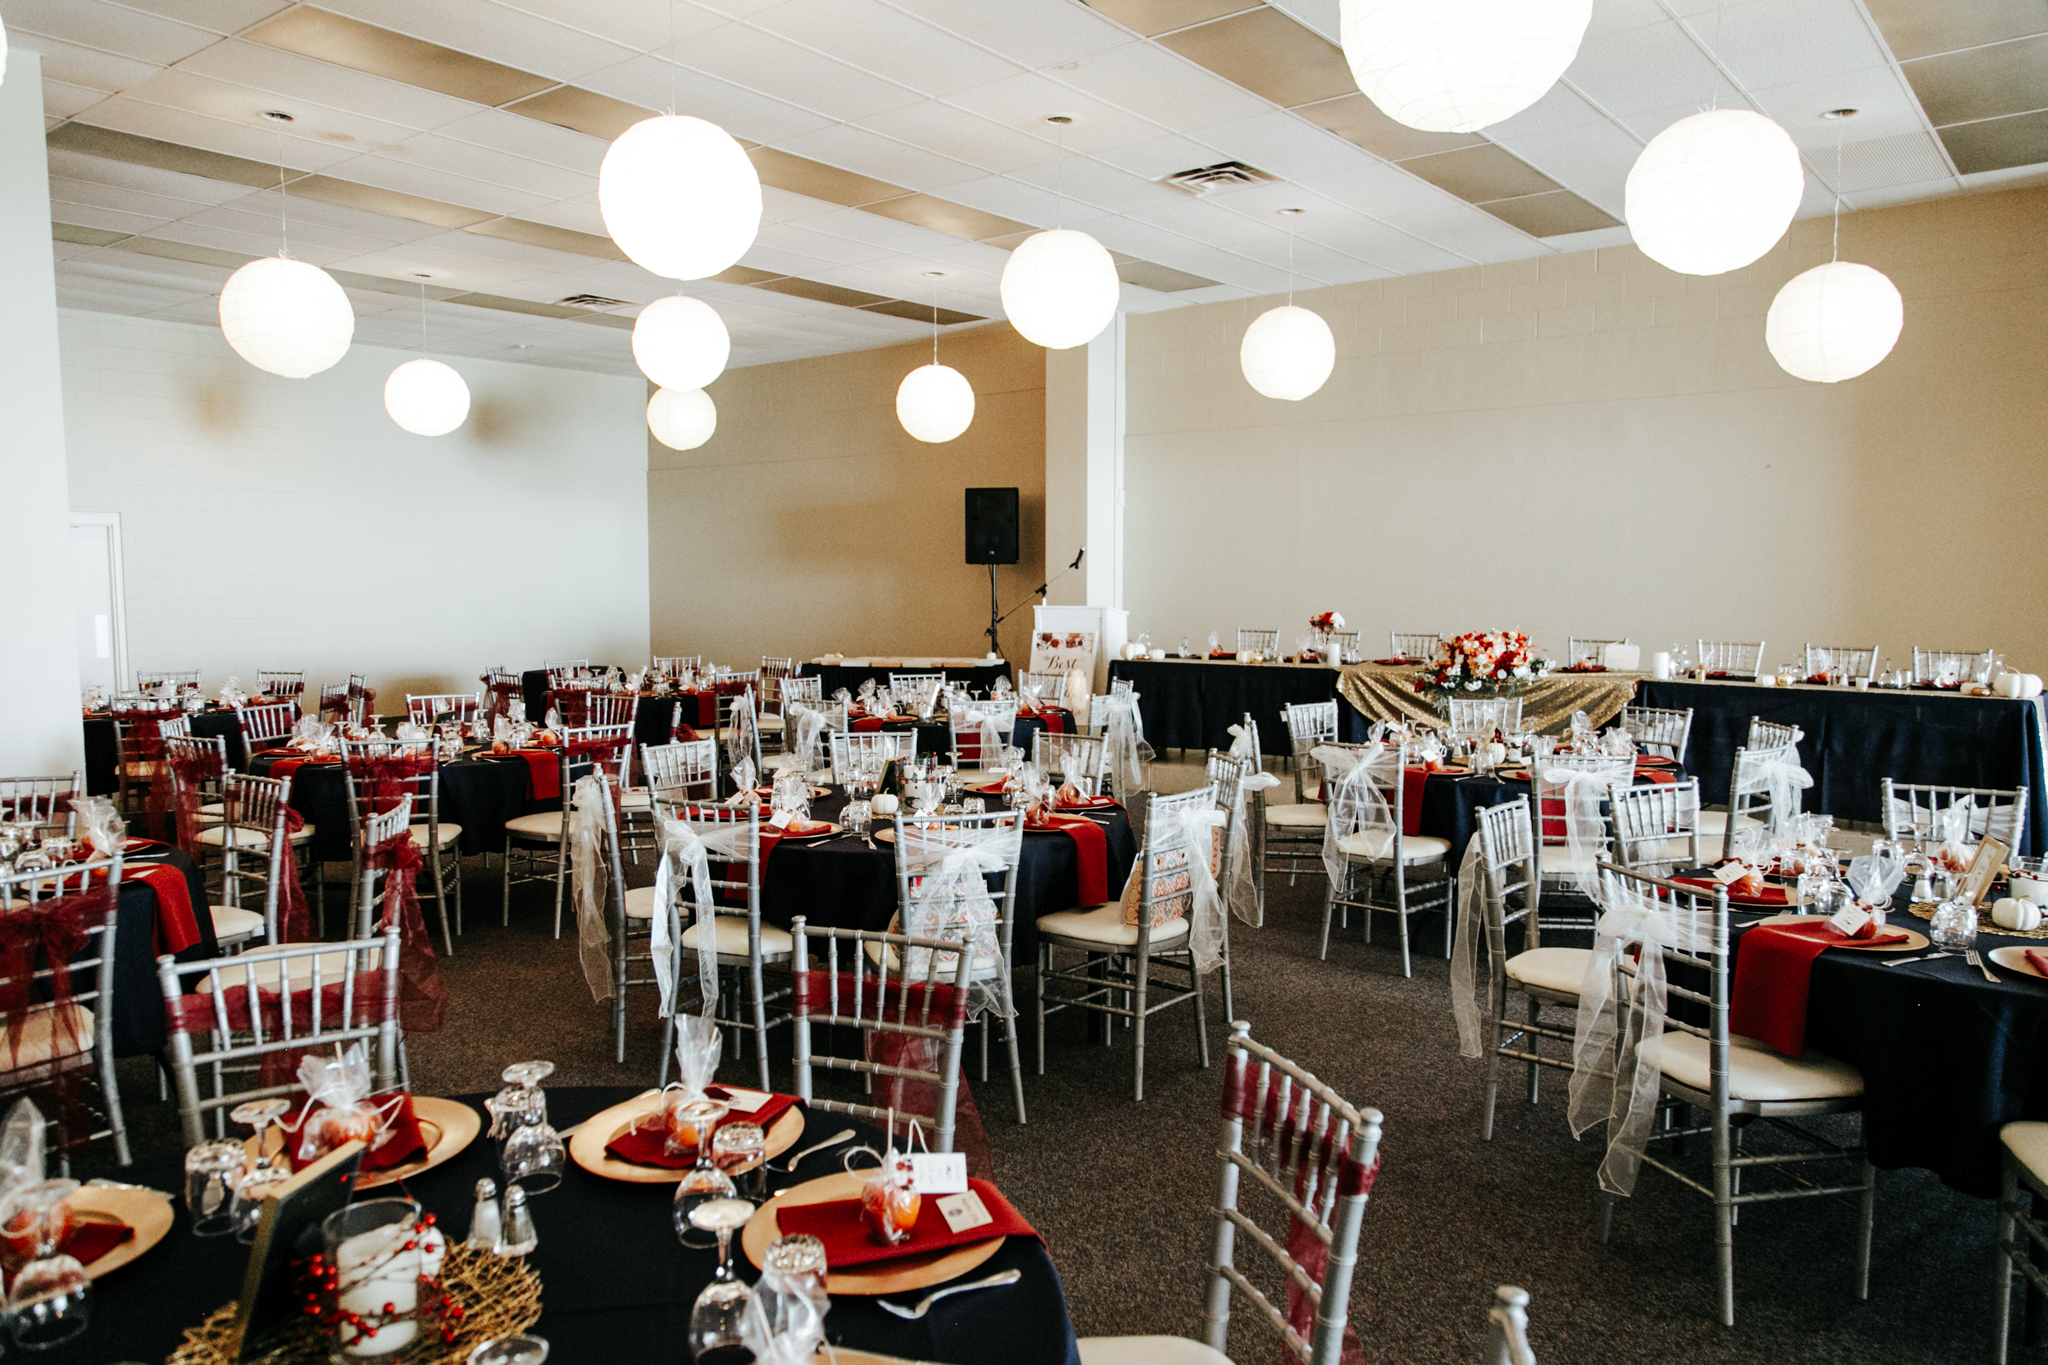 lethbridge-photographer-love-and-be-loved-photography-rocky-mountain-turf-club-reception-katie-kelli-wedding-picture-image-photo-400.jpg